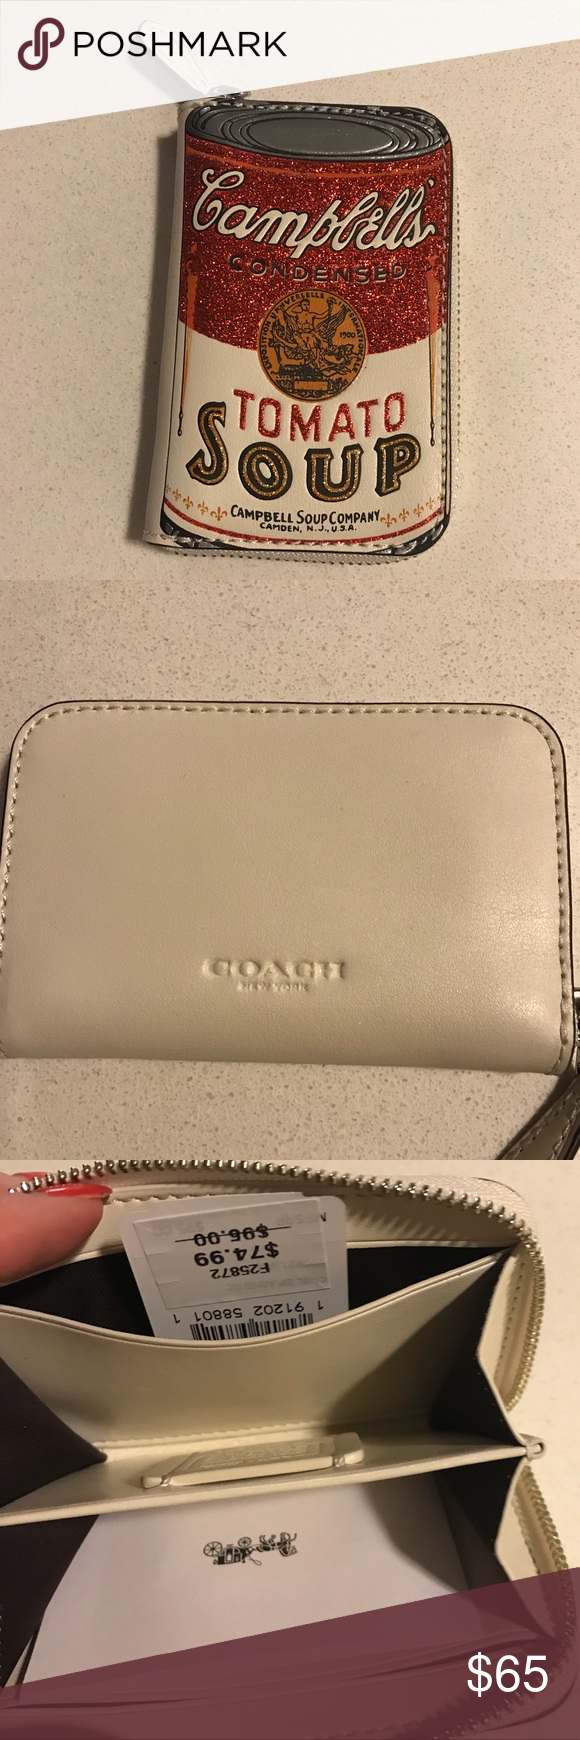 Coach Campbell S Soup Wallet New With Tags Coach Wallet Campbell